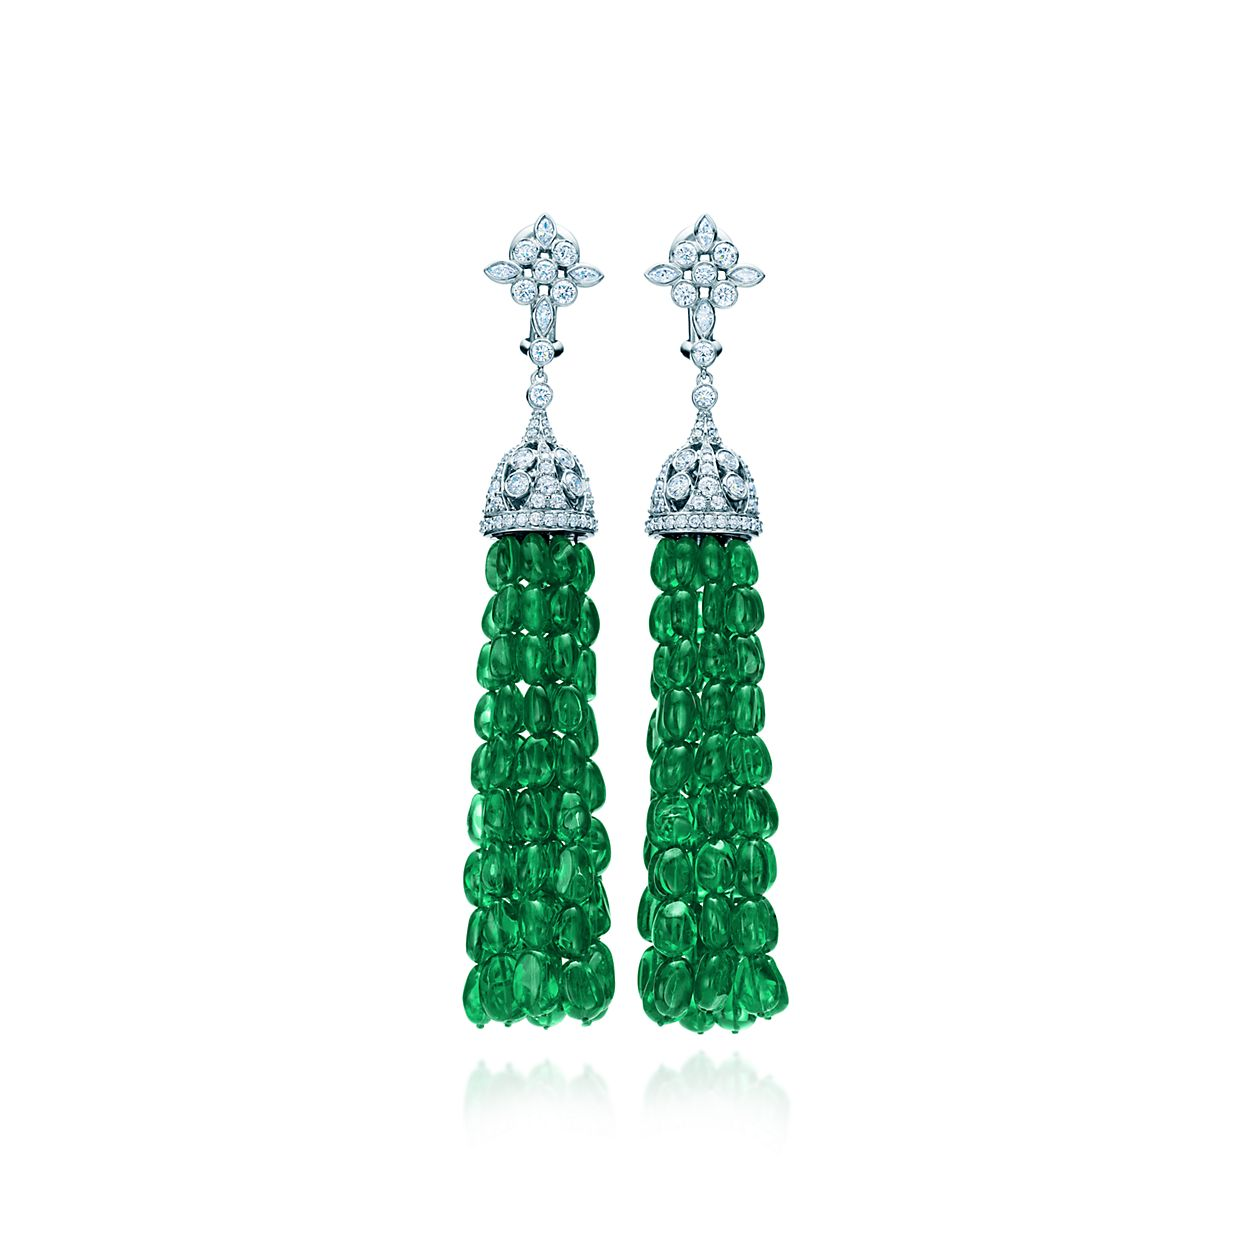 Tsavorite Tel Earrings